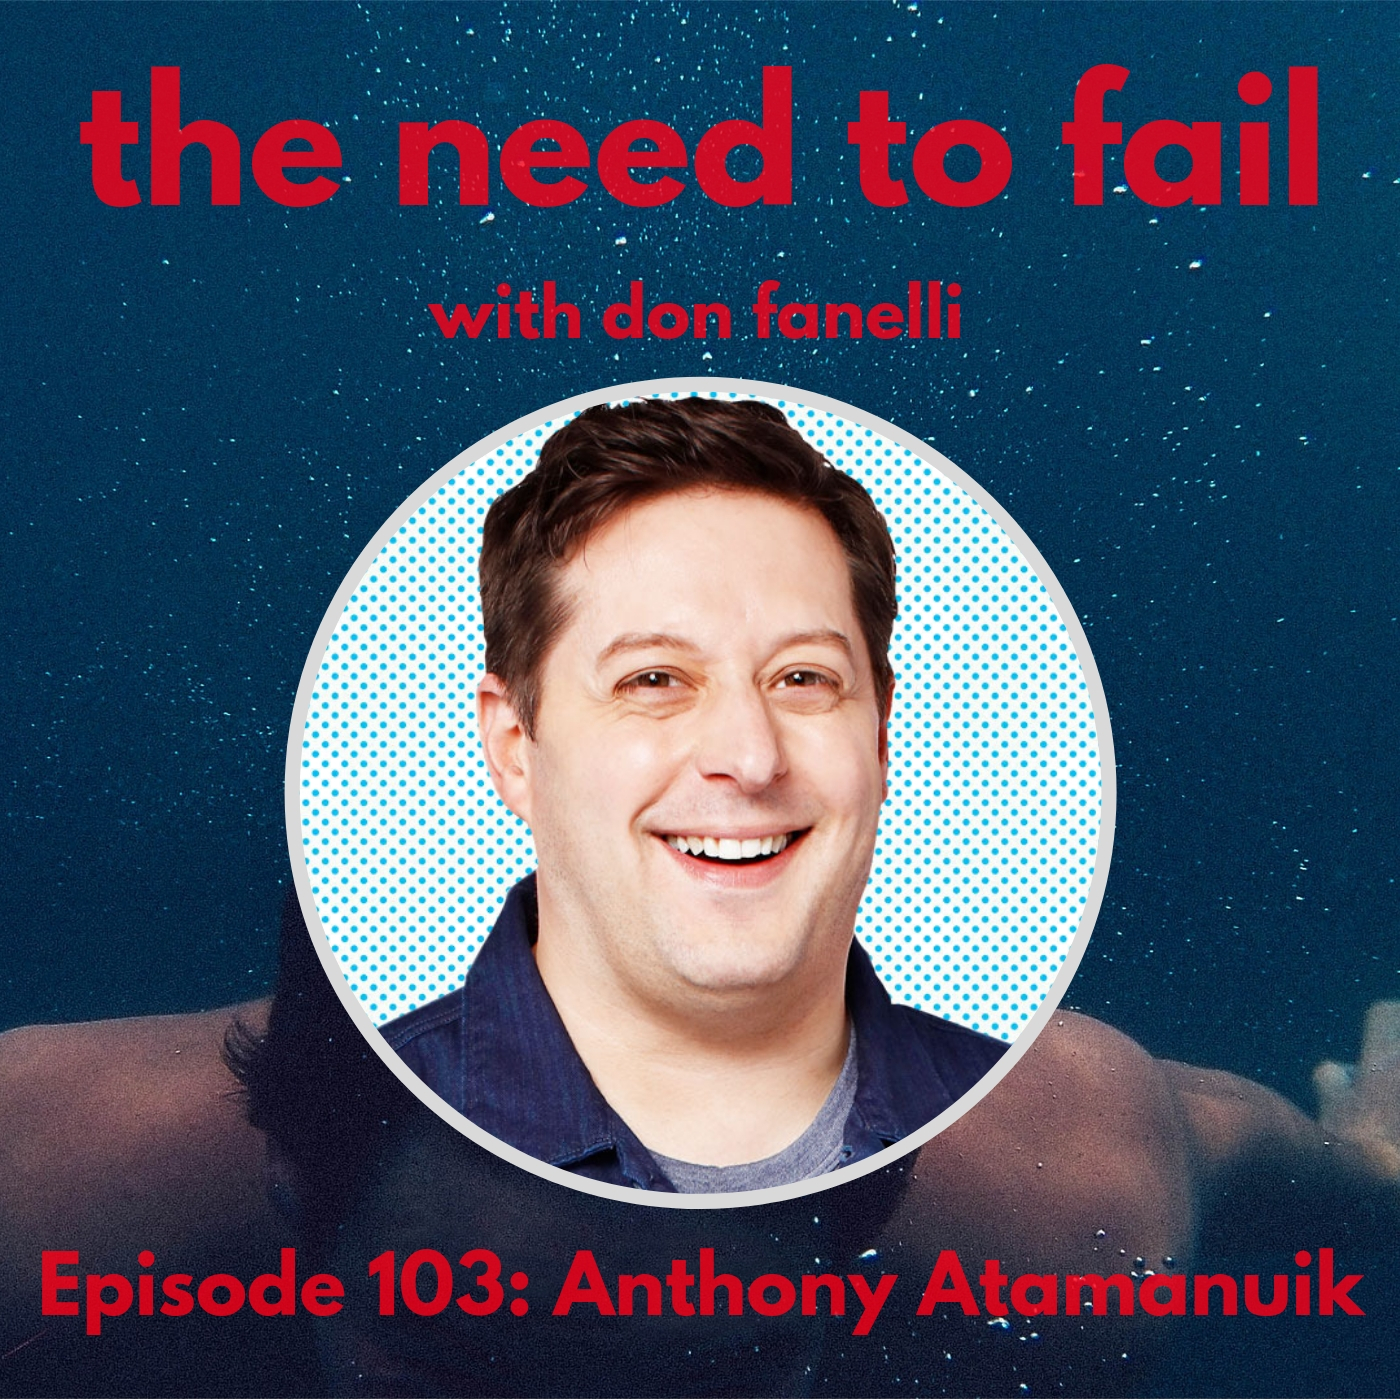 Episode 103: Anthony Atamanuik